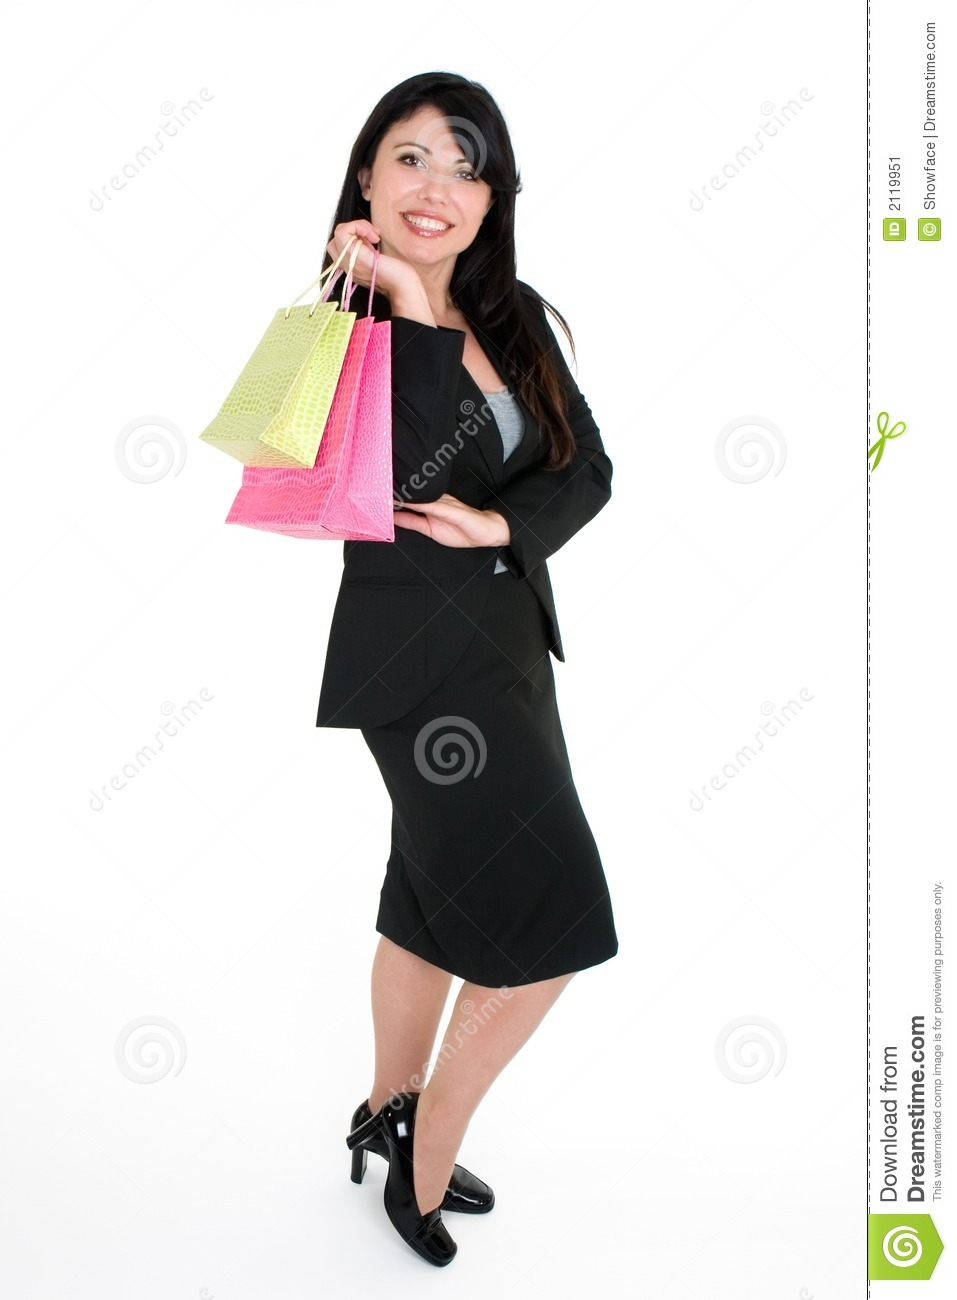 Smiling Customer Shopping Bags Stock Image - Image: 2119951